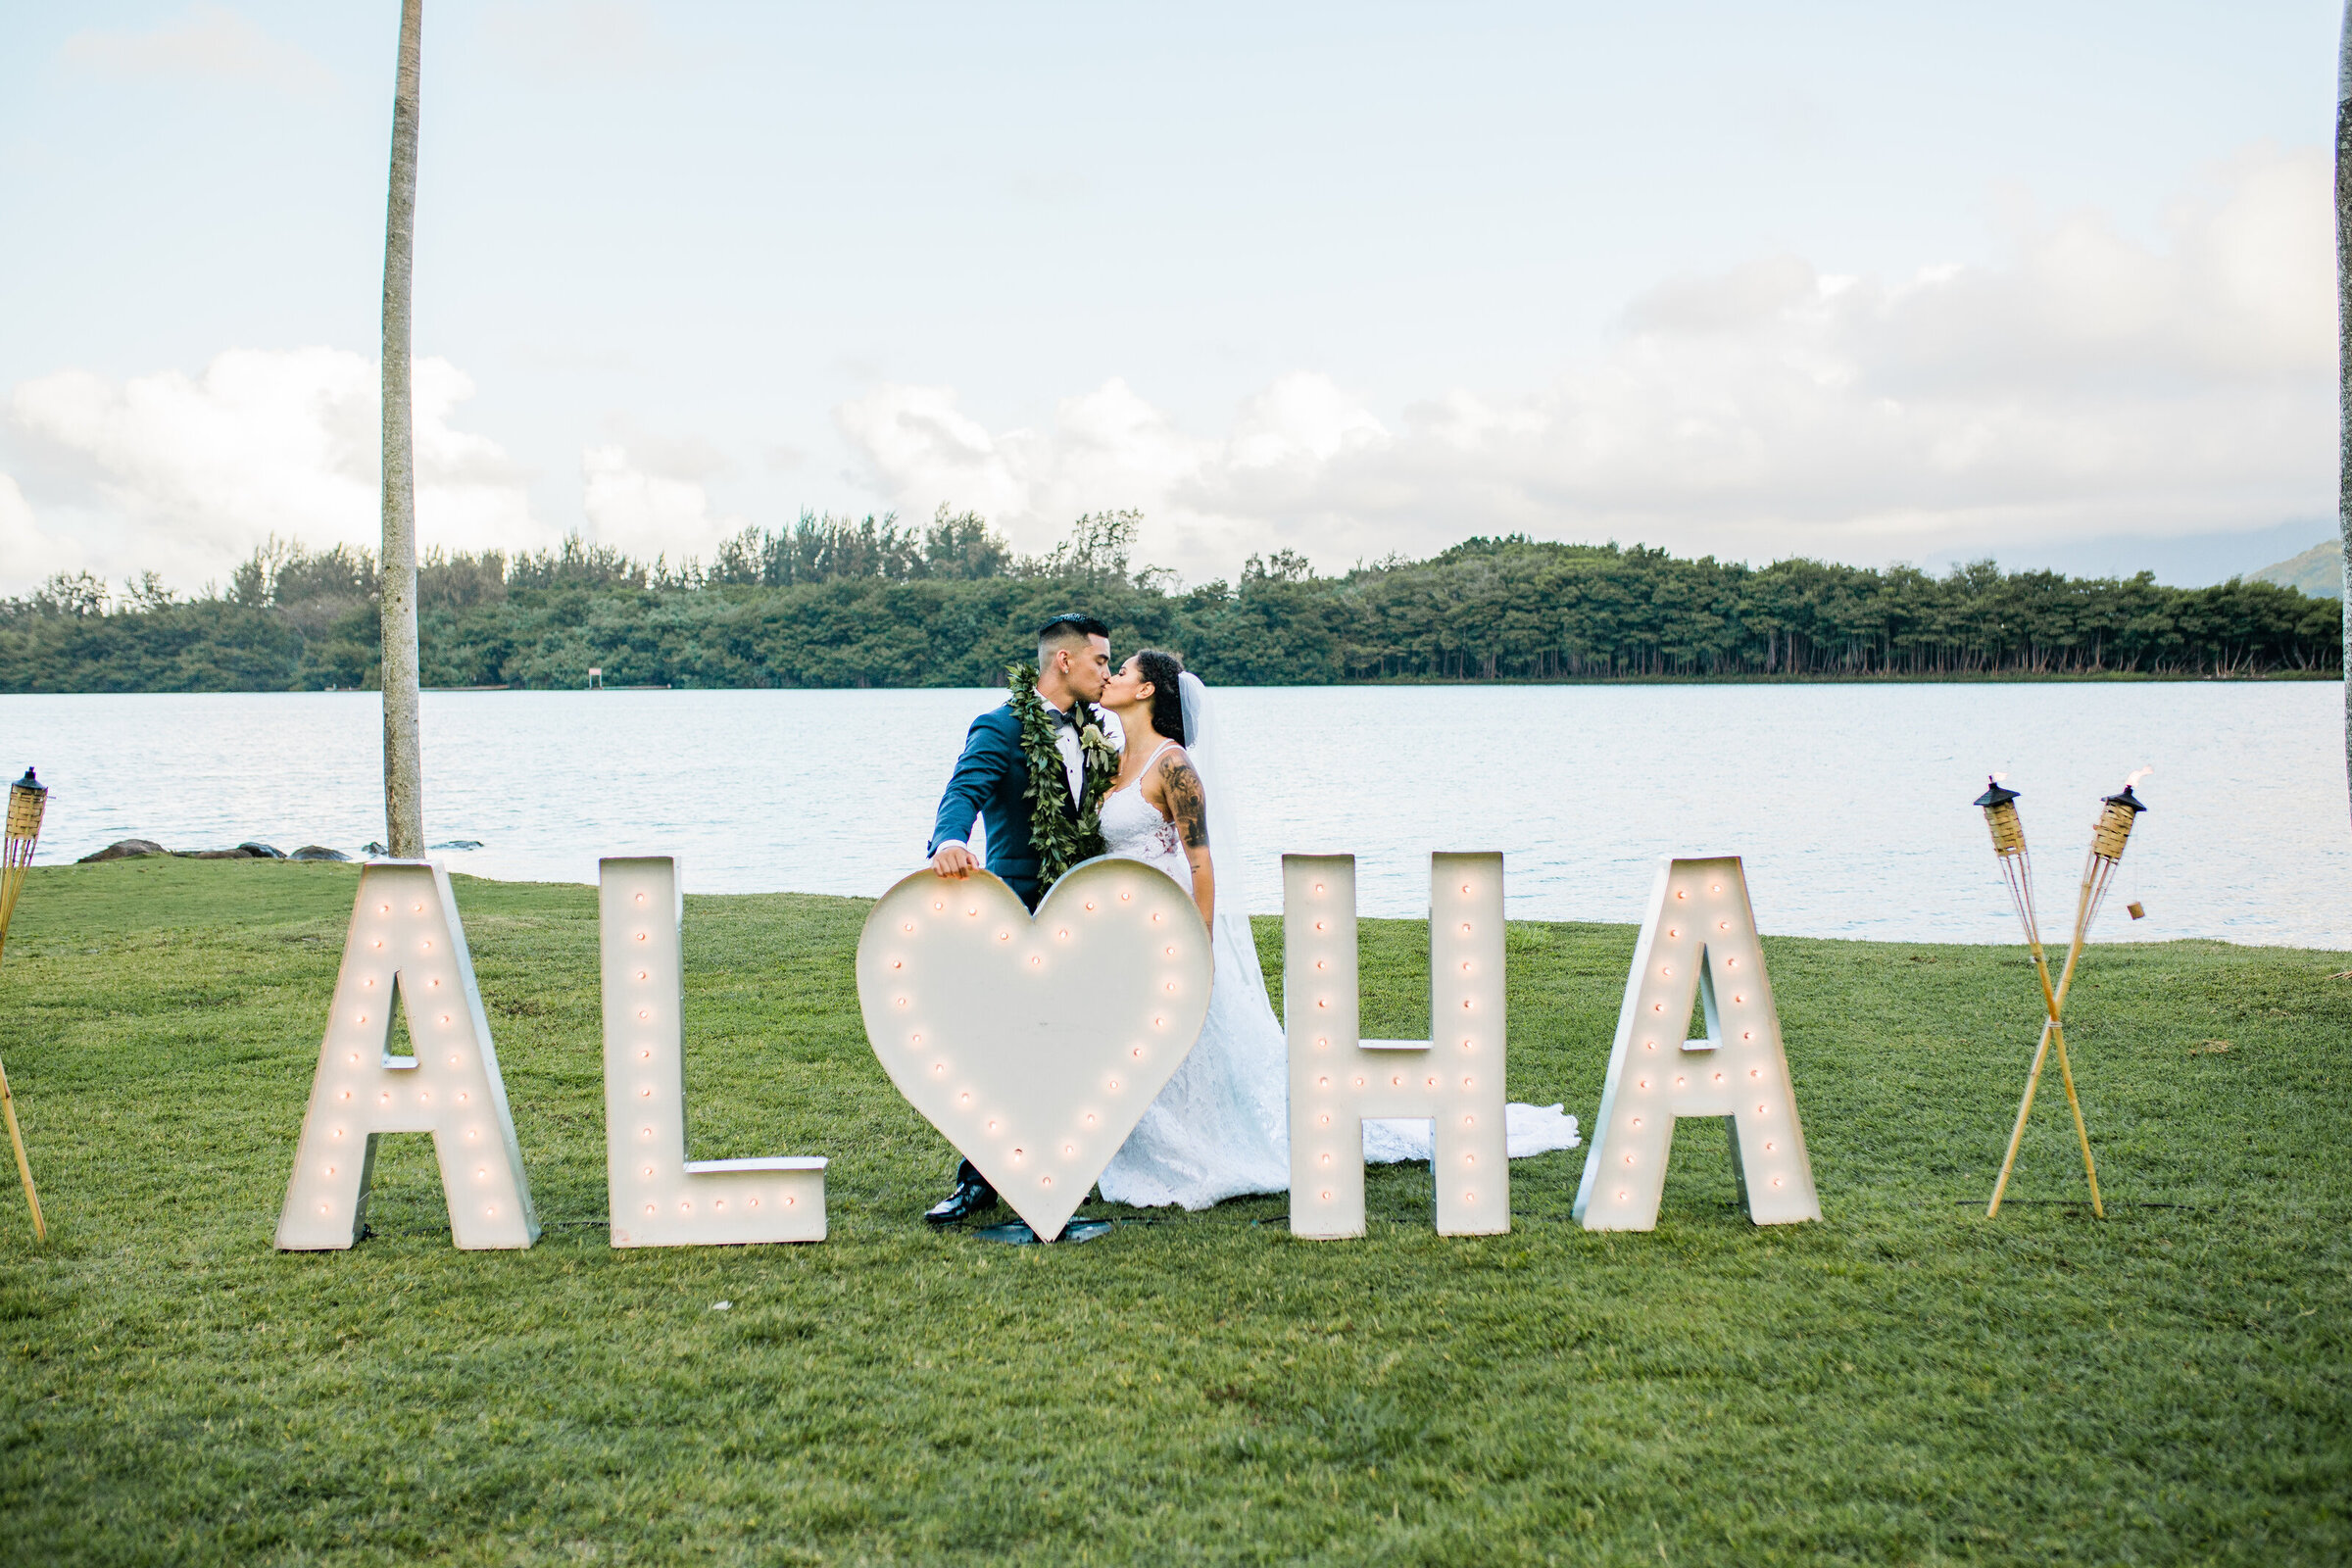 Aloha Sign and Torches